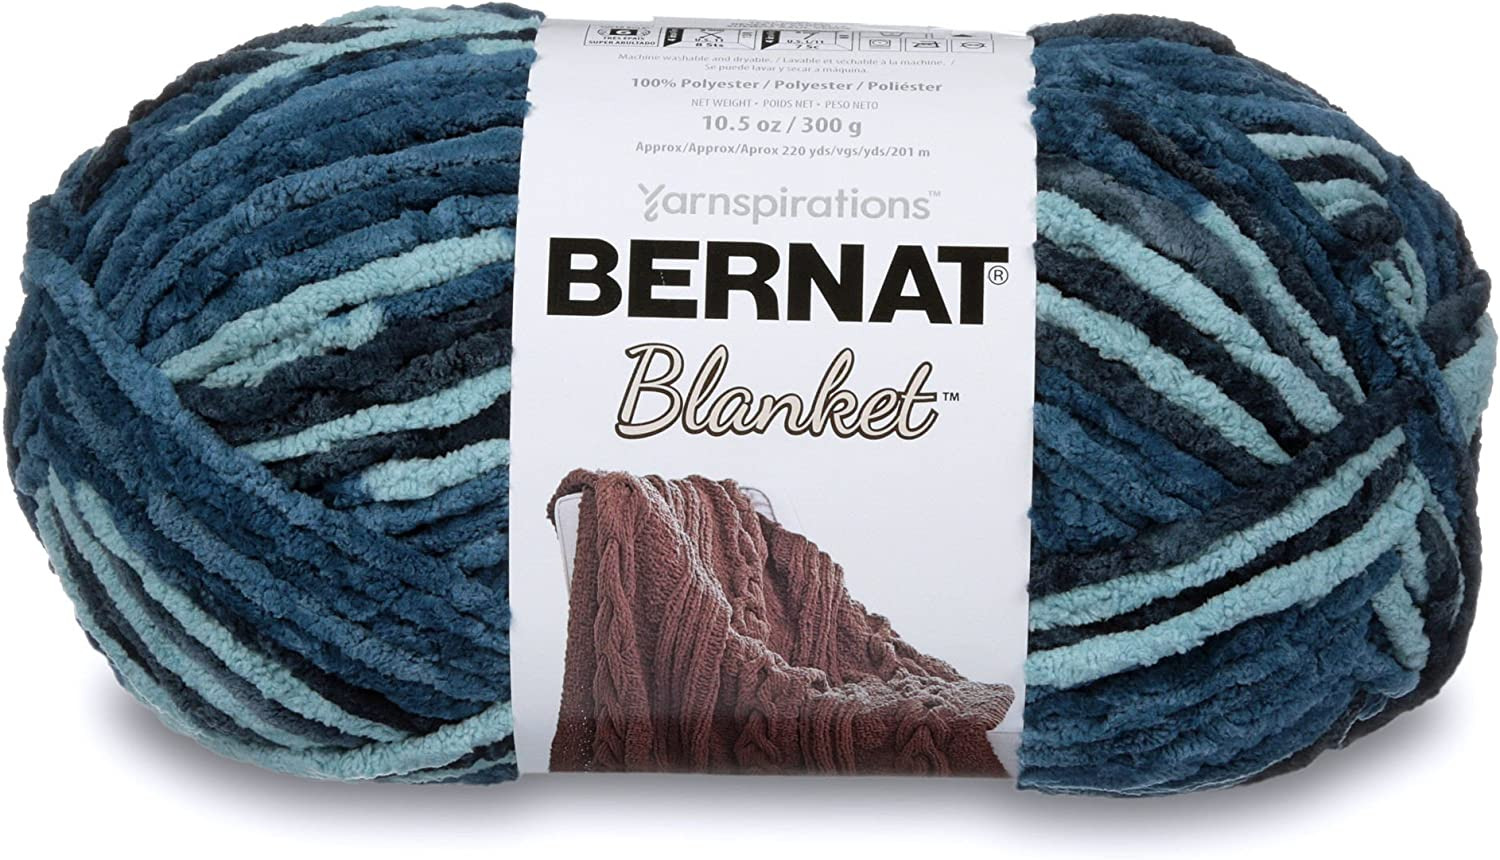 Bernat Blanket Yarn, Teal Dreams